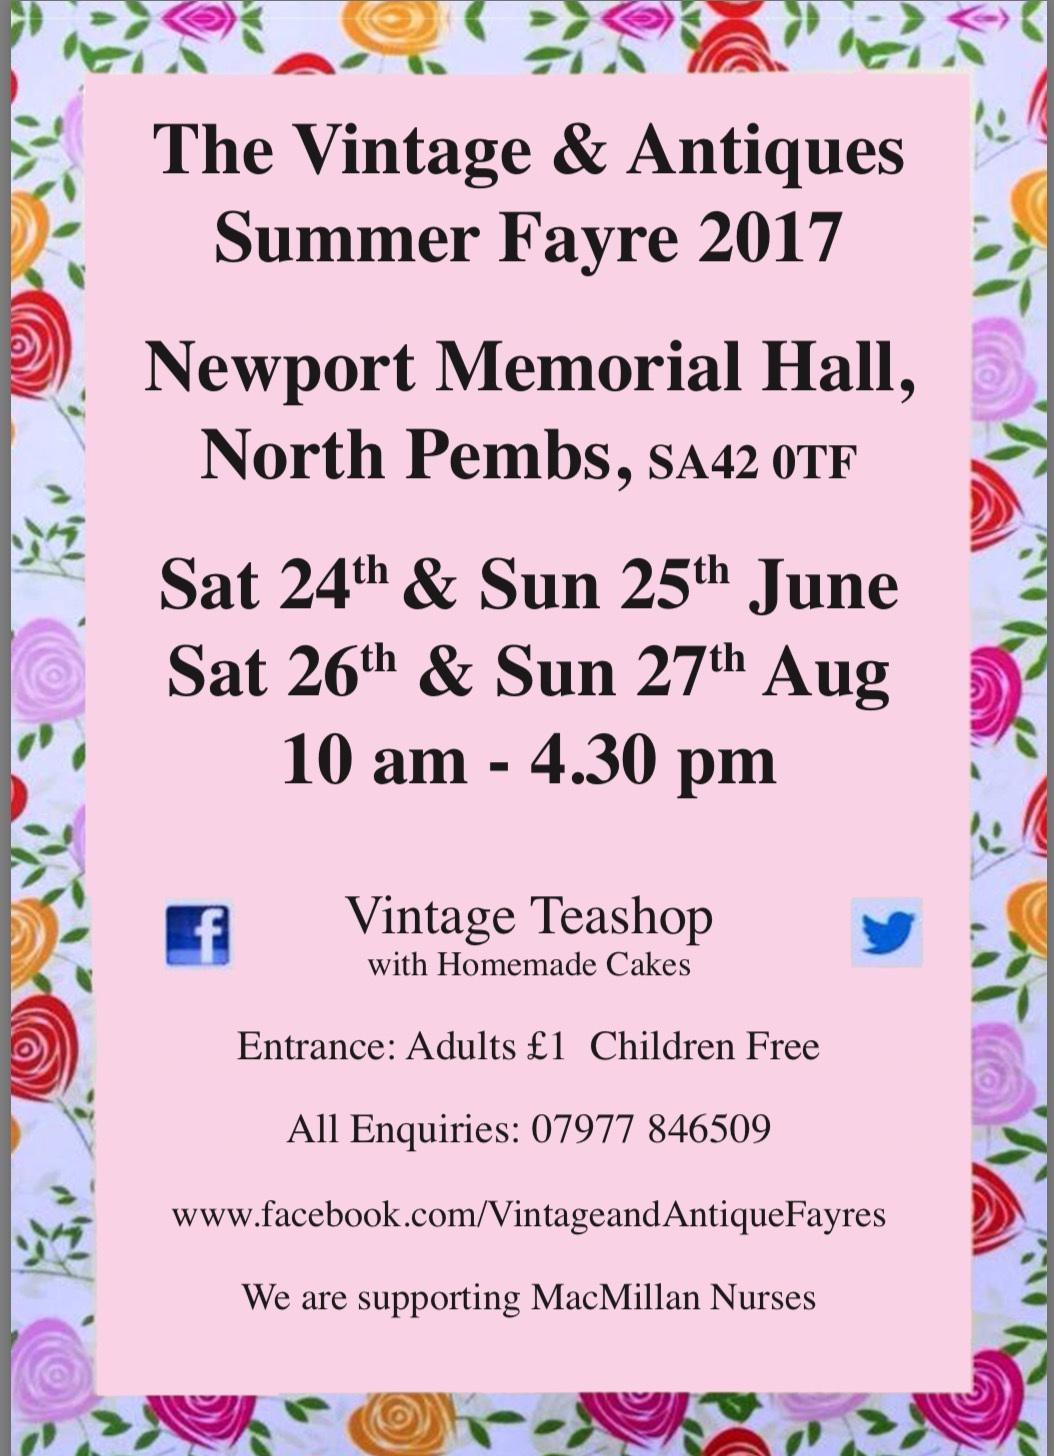 Vintage & Antique Summer Fayre